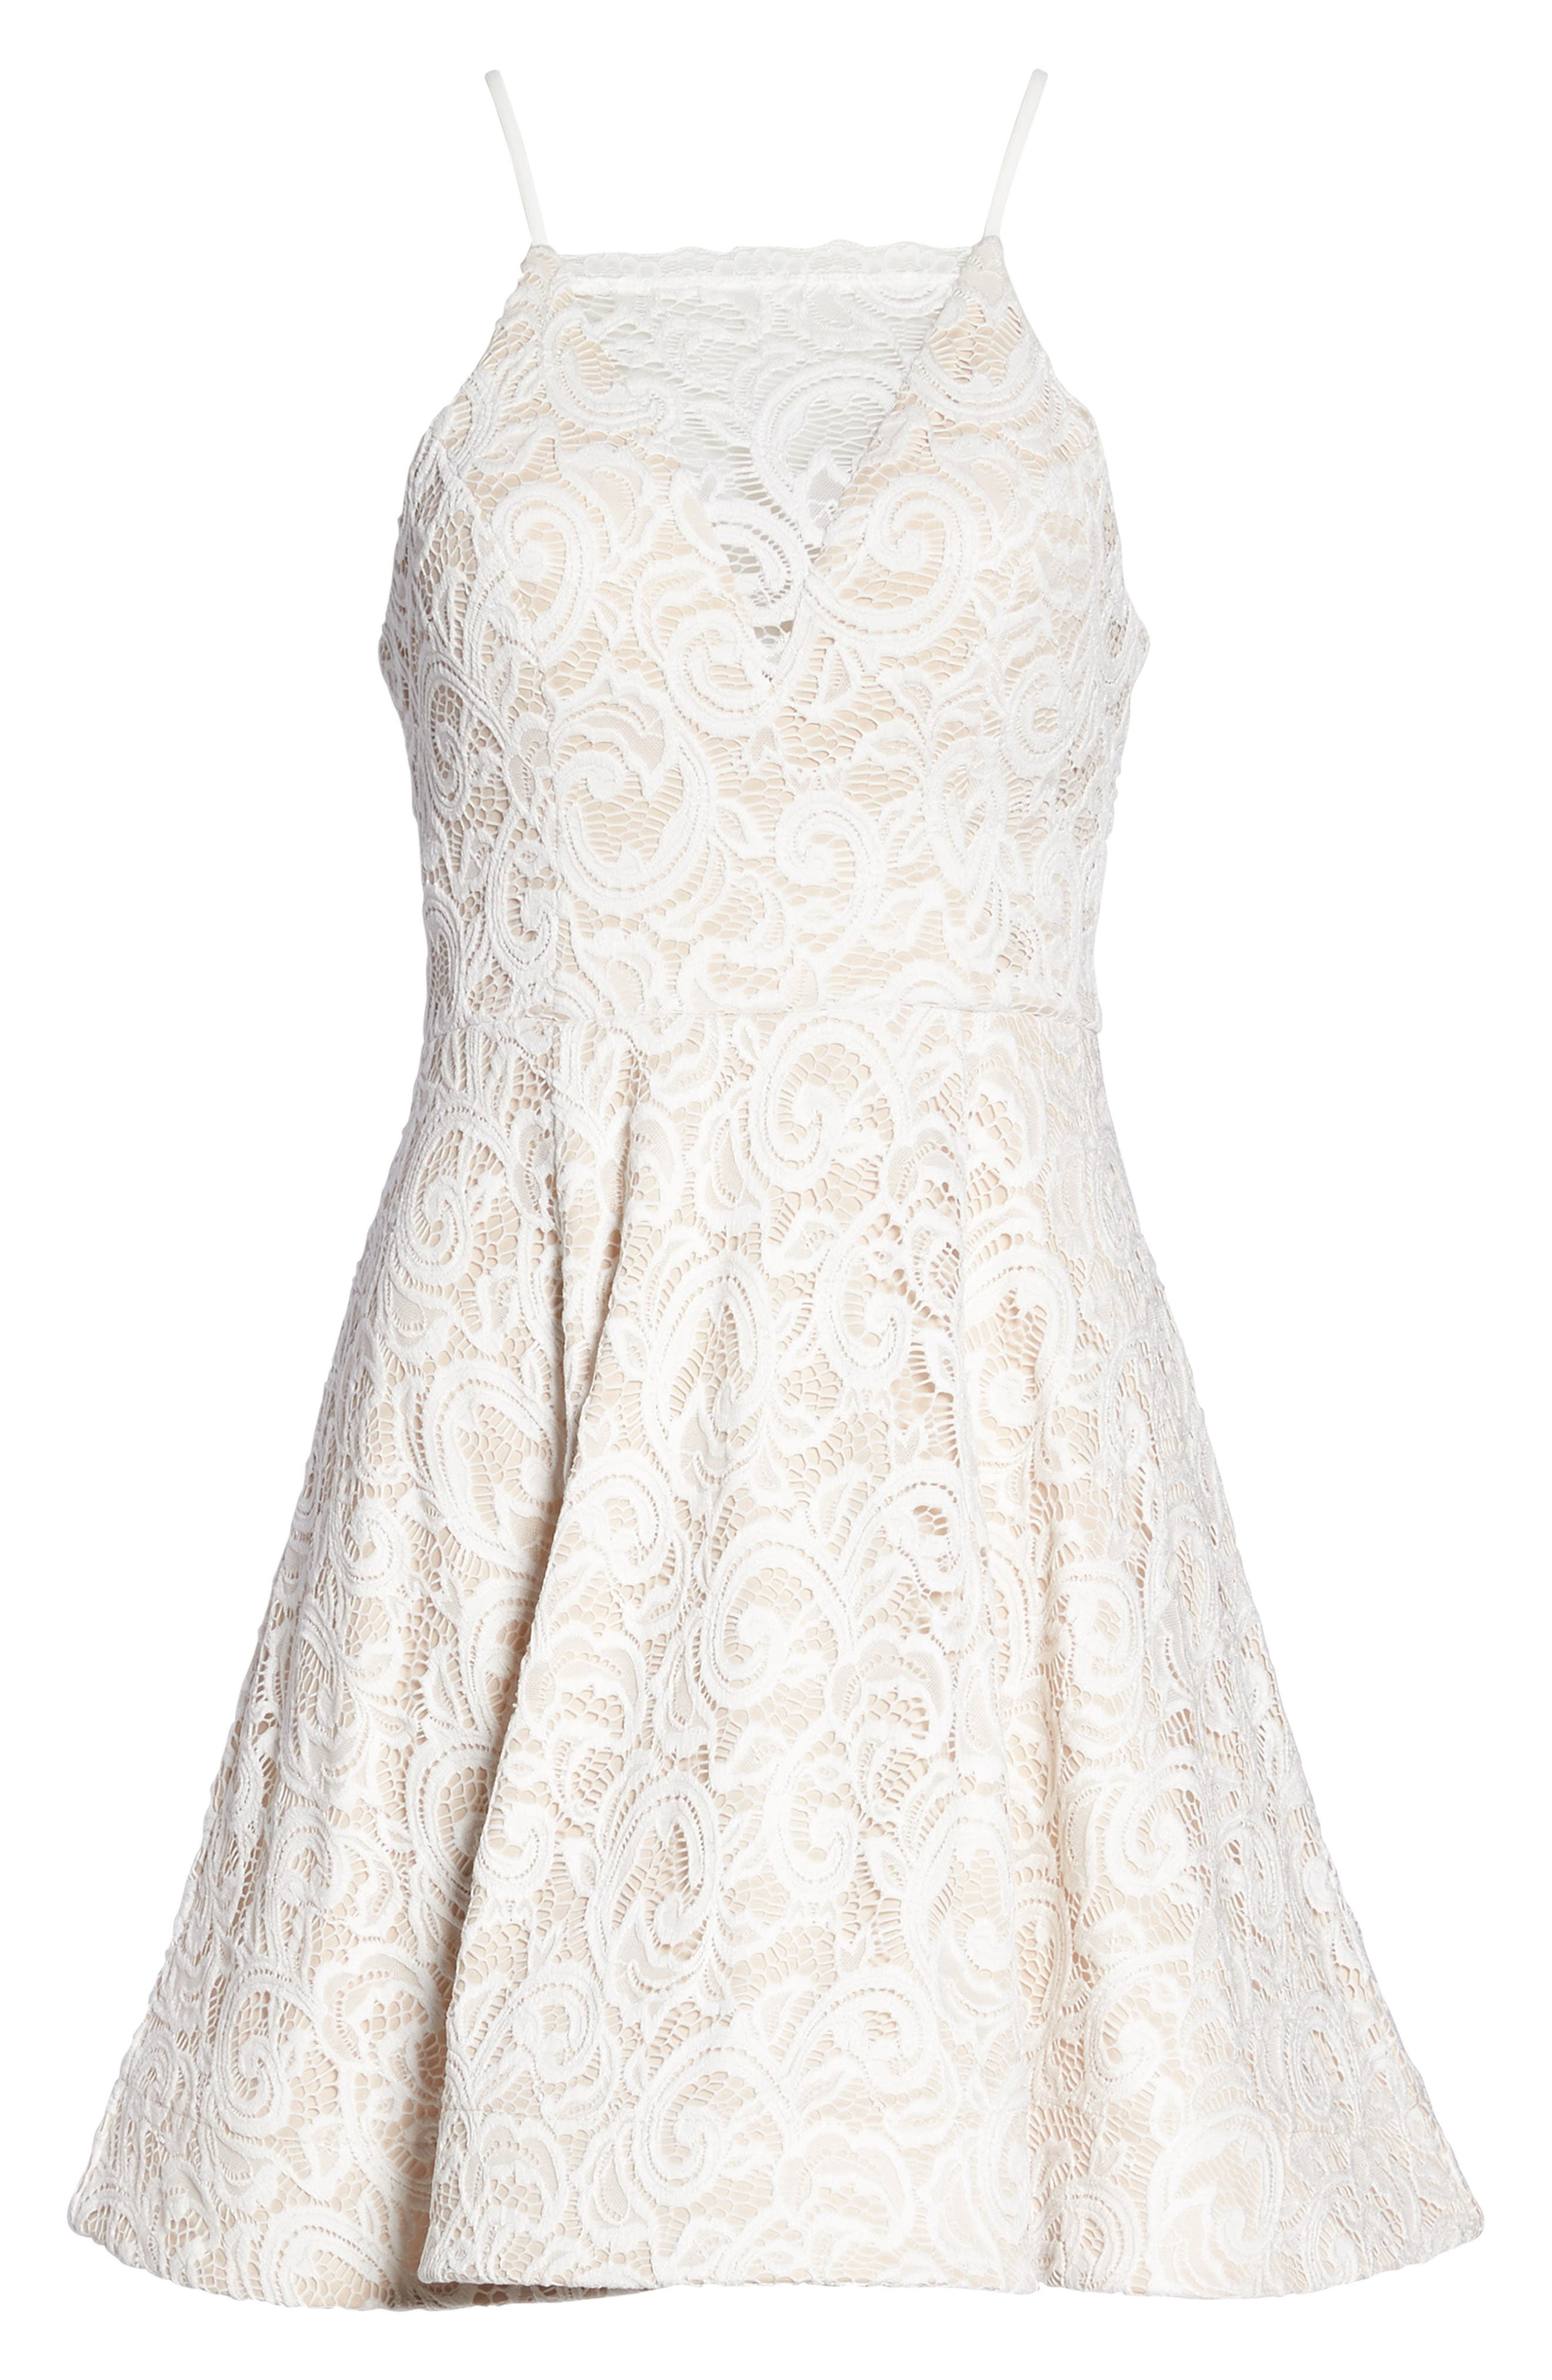 Illusion Lace Fit & Flare Dress,                             Alternate thumbnail 6, color,                             Ivory/ Nude